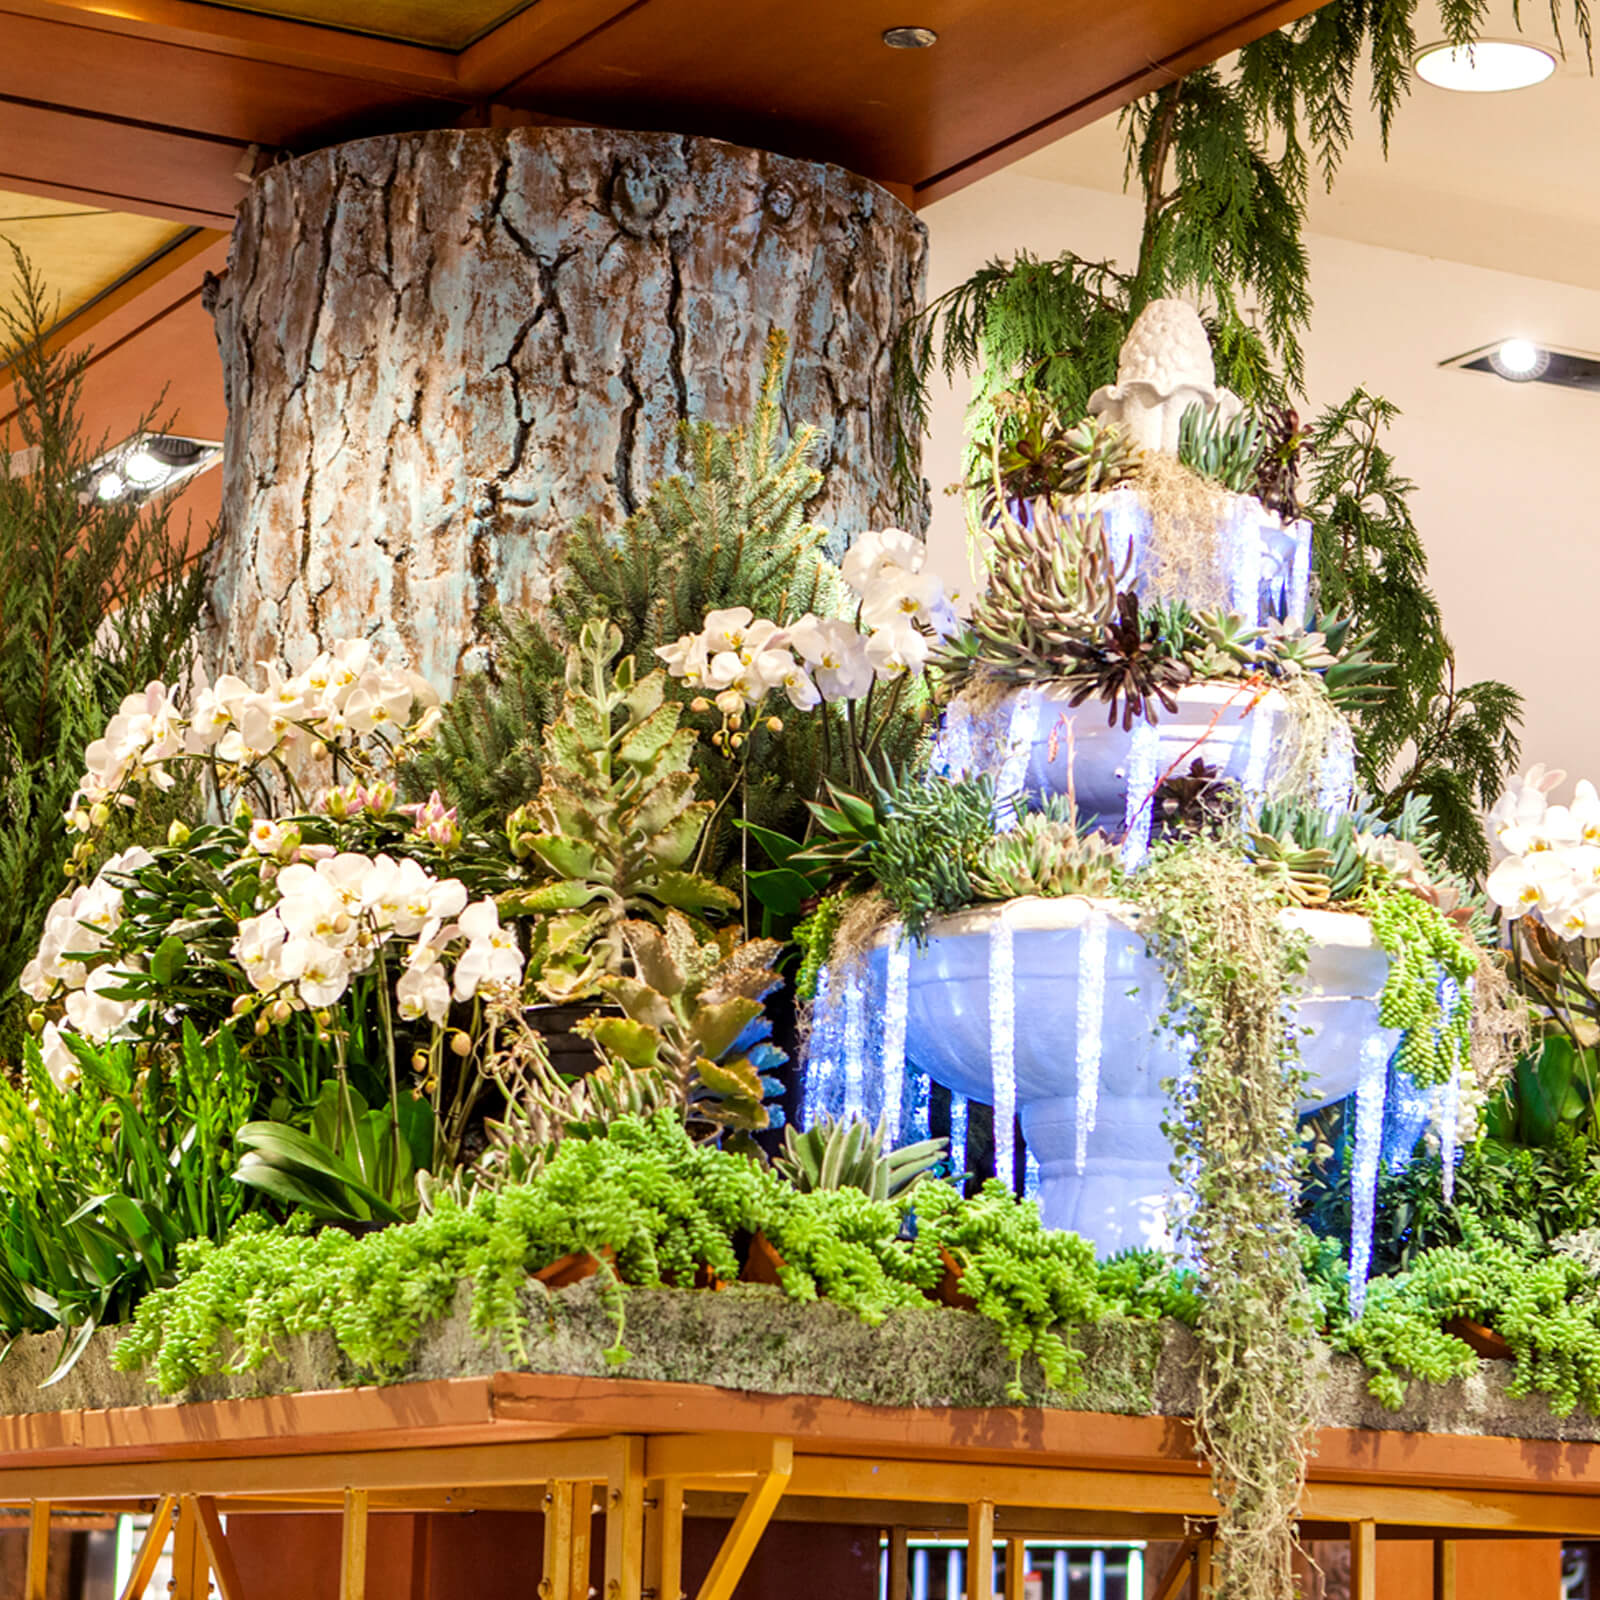 Macys Flower Show 2018 Chicago Macys